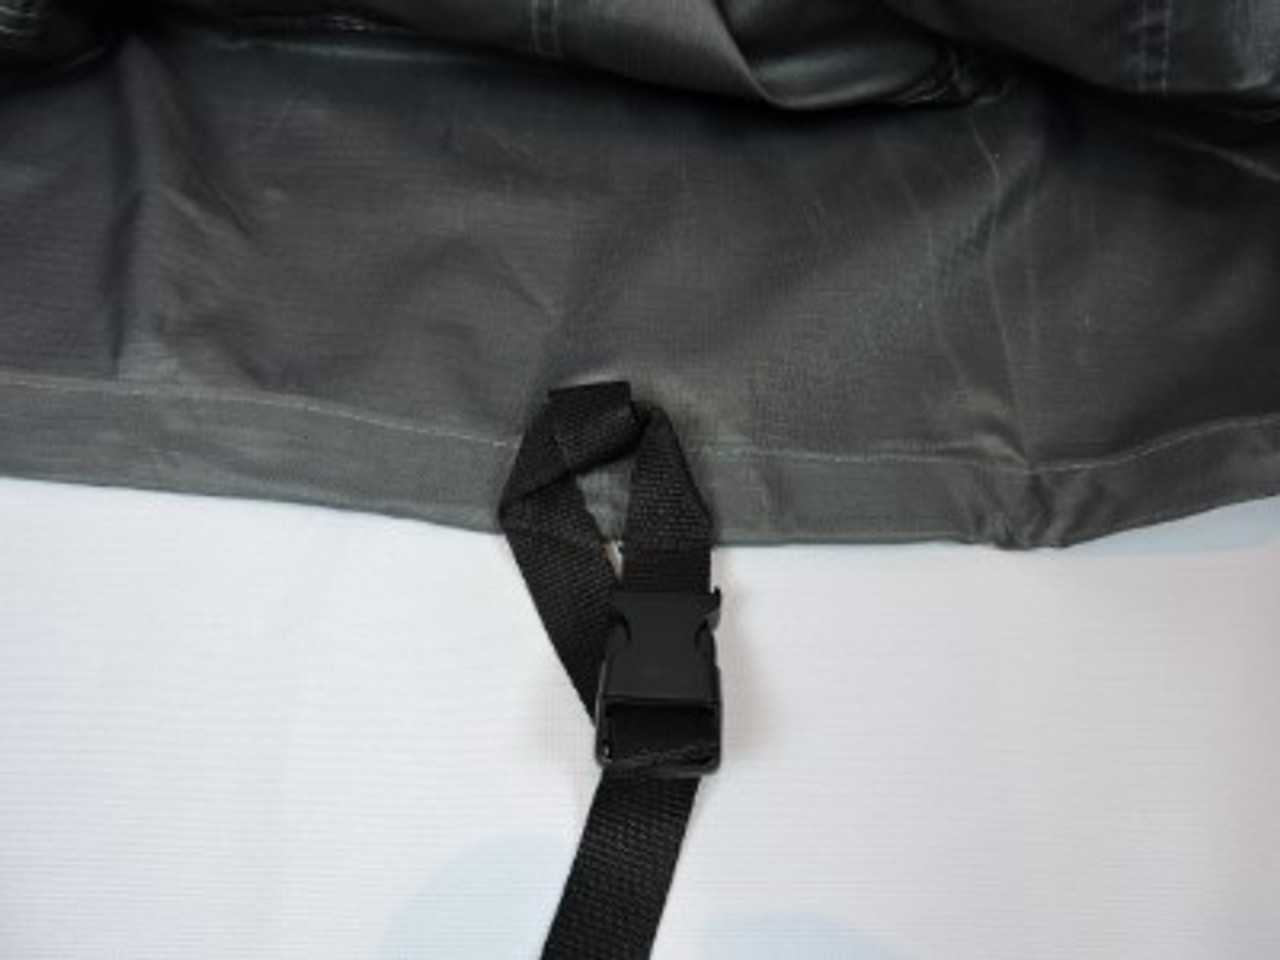 Avalon strap and buckle system for secure tie down